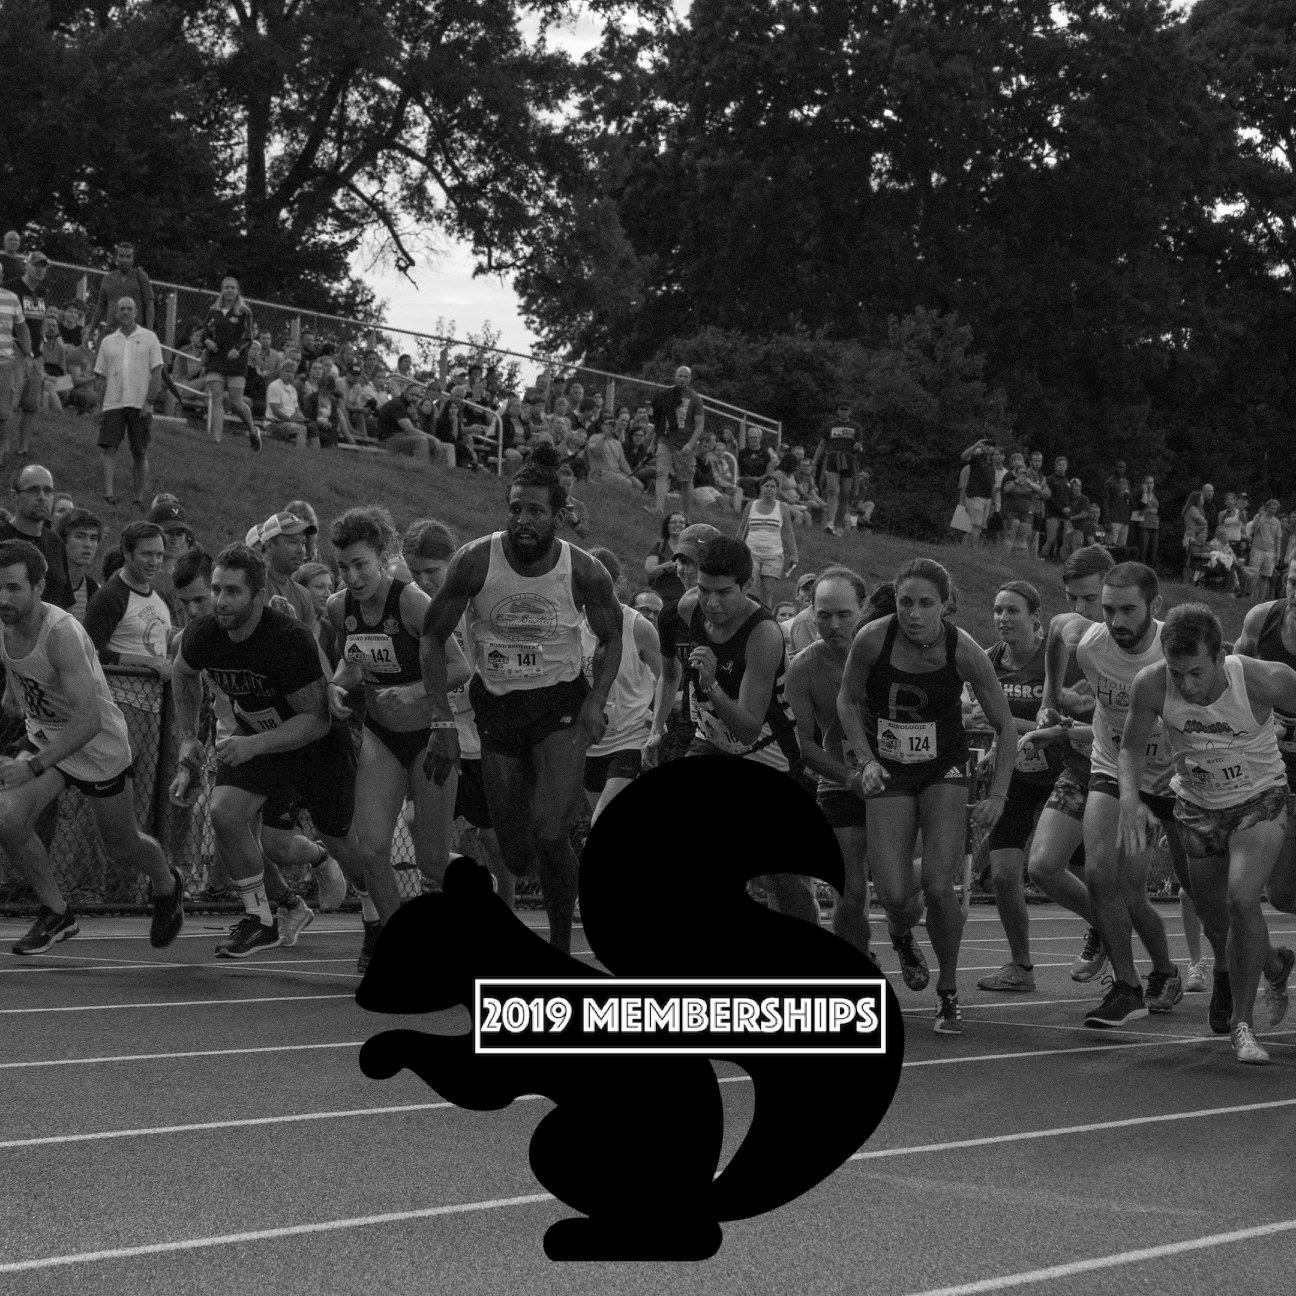 2019 Sir Walter Running Member